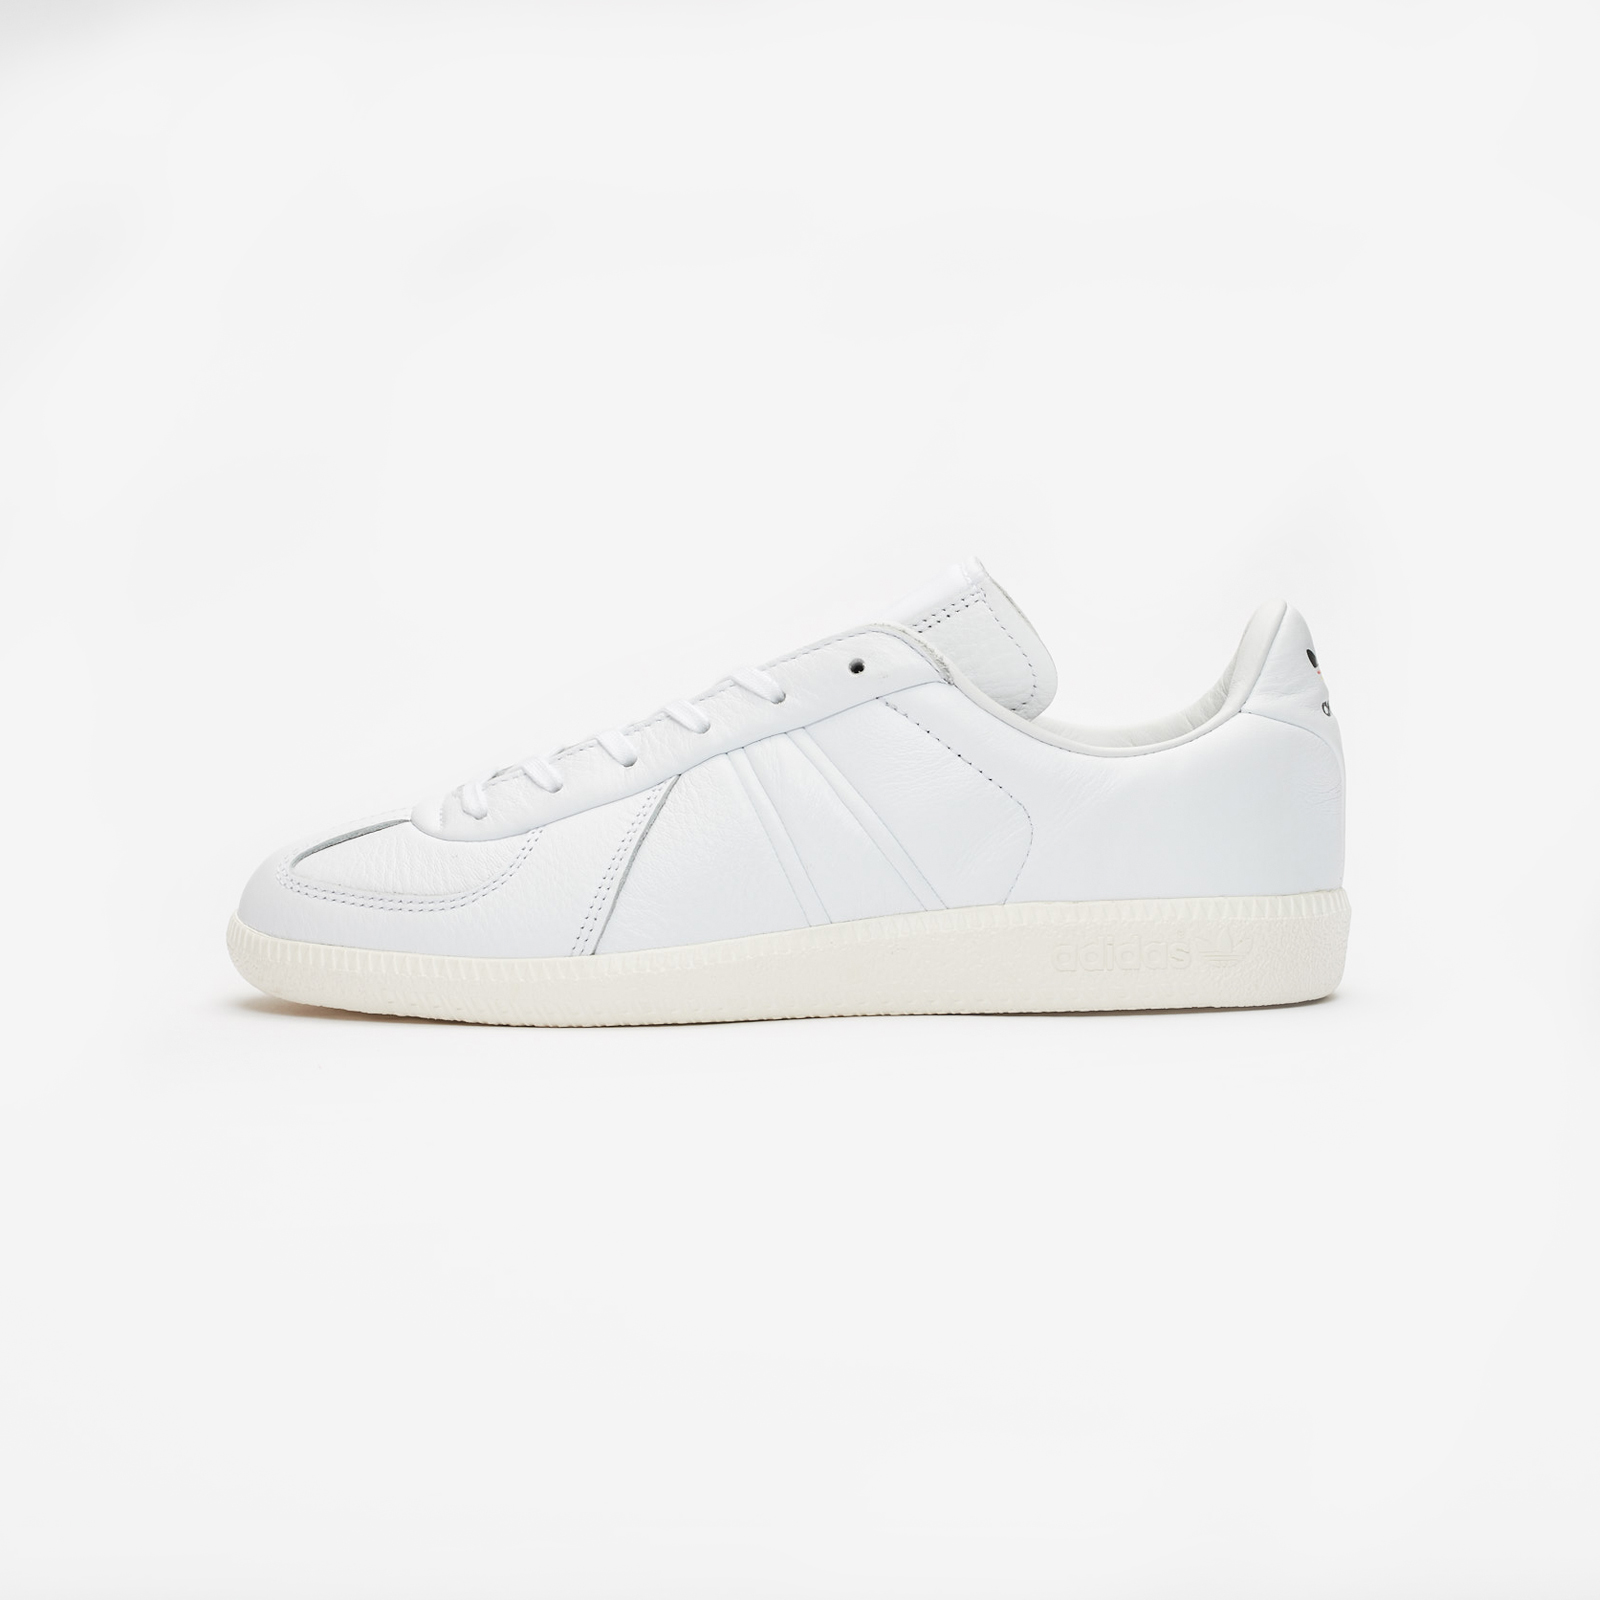 Bc0545 x et Army sneakers Sneakersnstuff BW Oyster adidas qOxIwzFUH